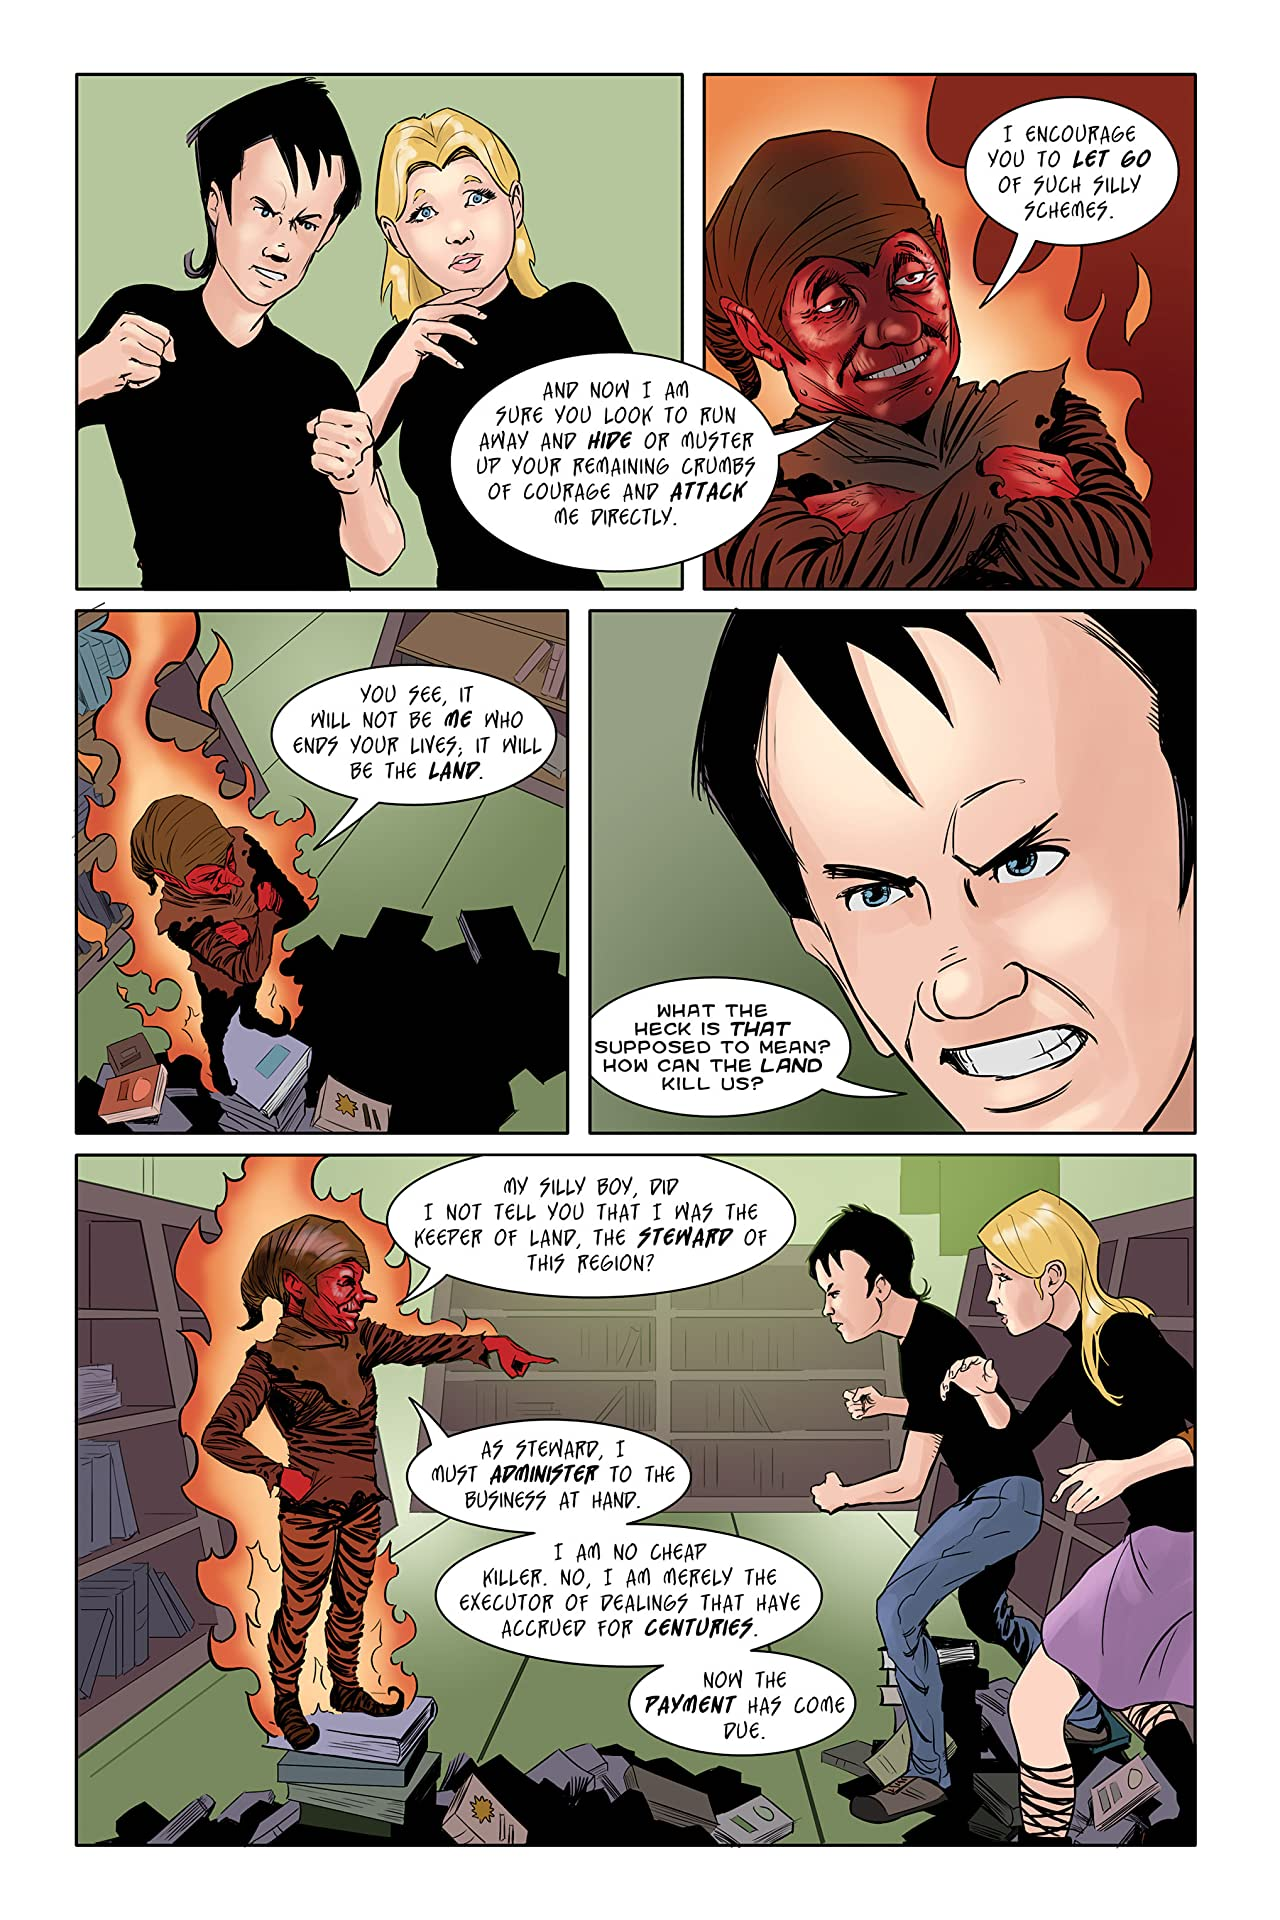 Nain Rouge: The Red Legend #3